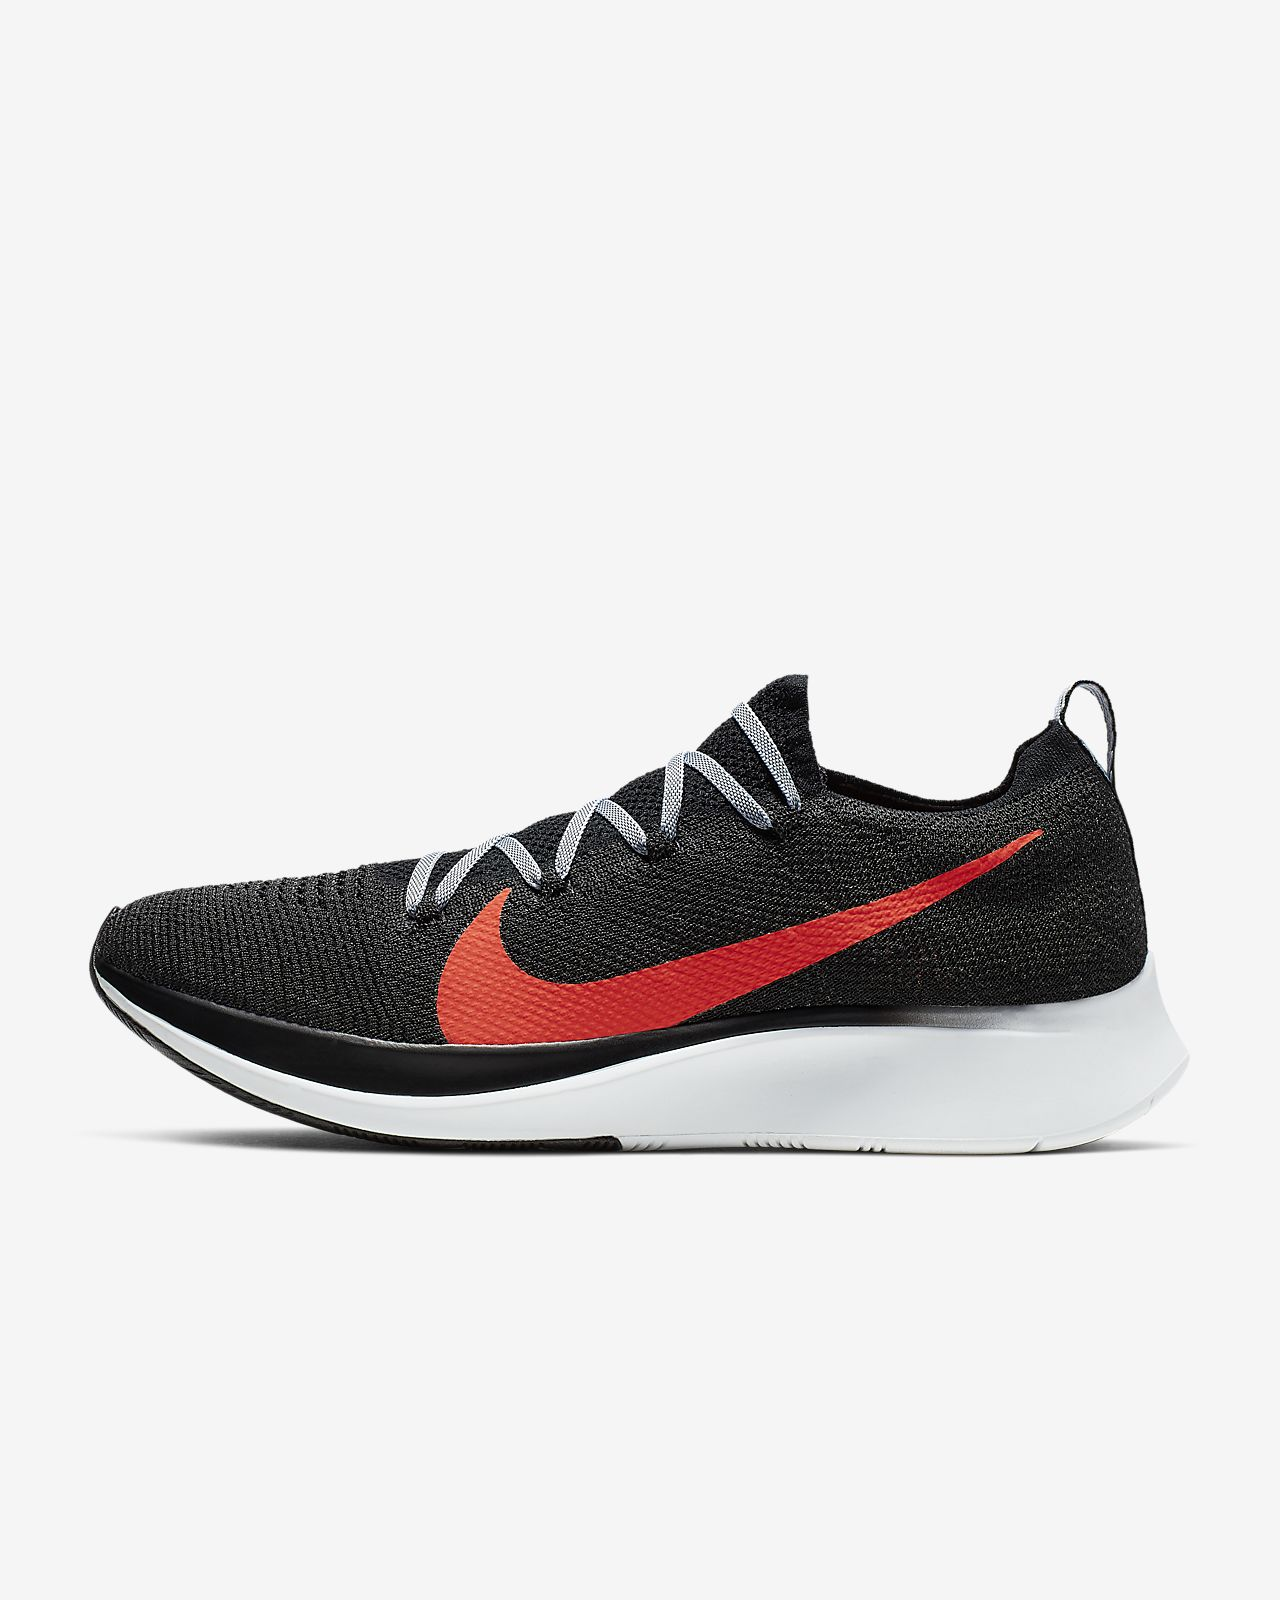 1dd099314e63 Nike Zoom Fly Flyknit Men s Running Shoe. Nike.com